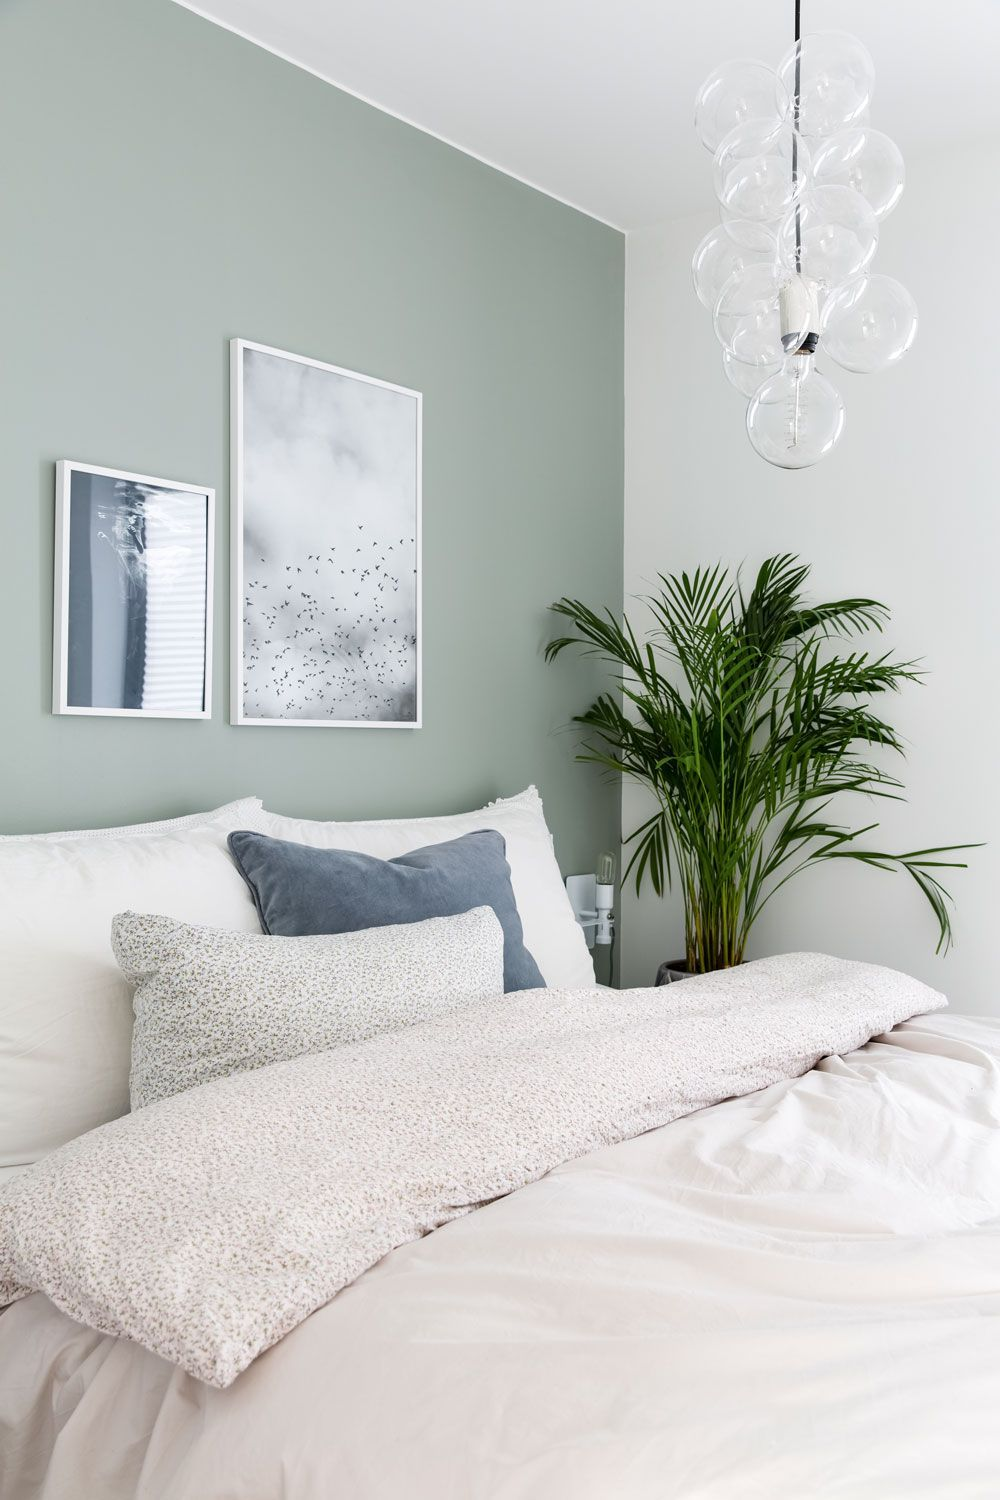 20+ Popular Bedroom Paint Colors that Give You Positive Vibes - HARP POST #bedroominspirations